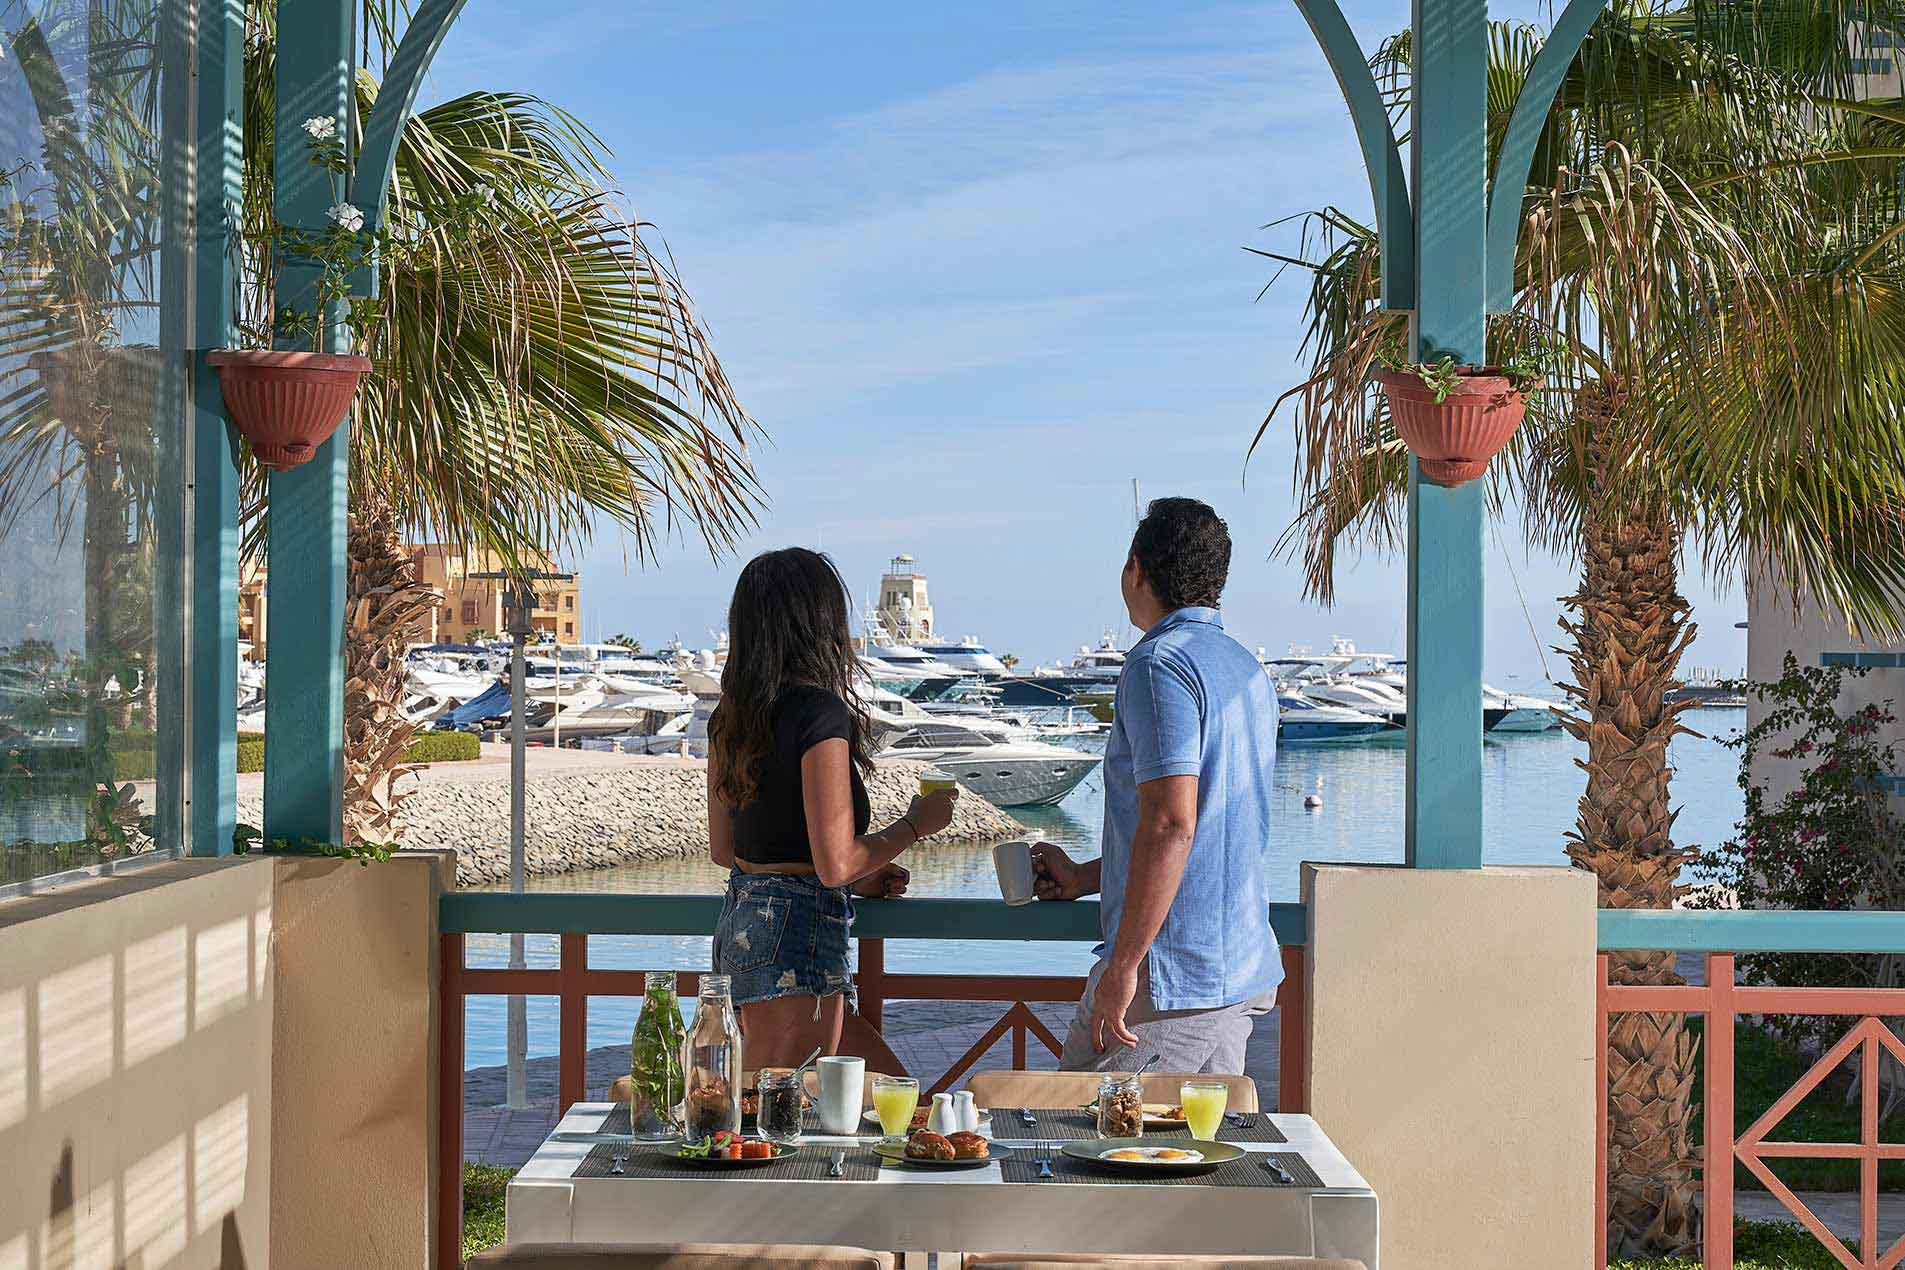 couple overviewing El Gouna marina from restaurant terrace